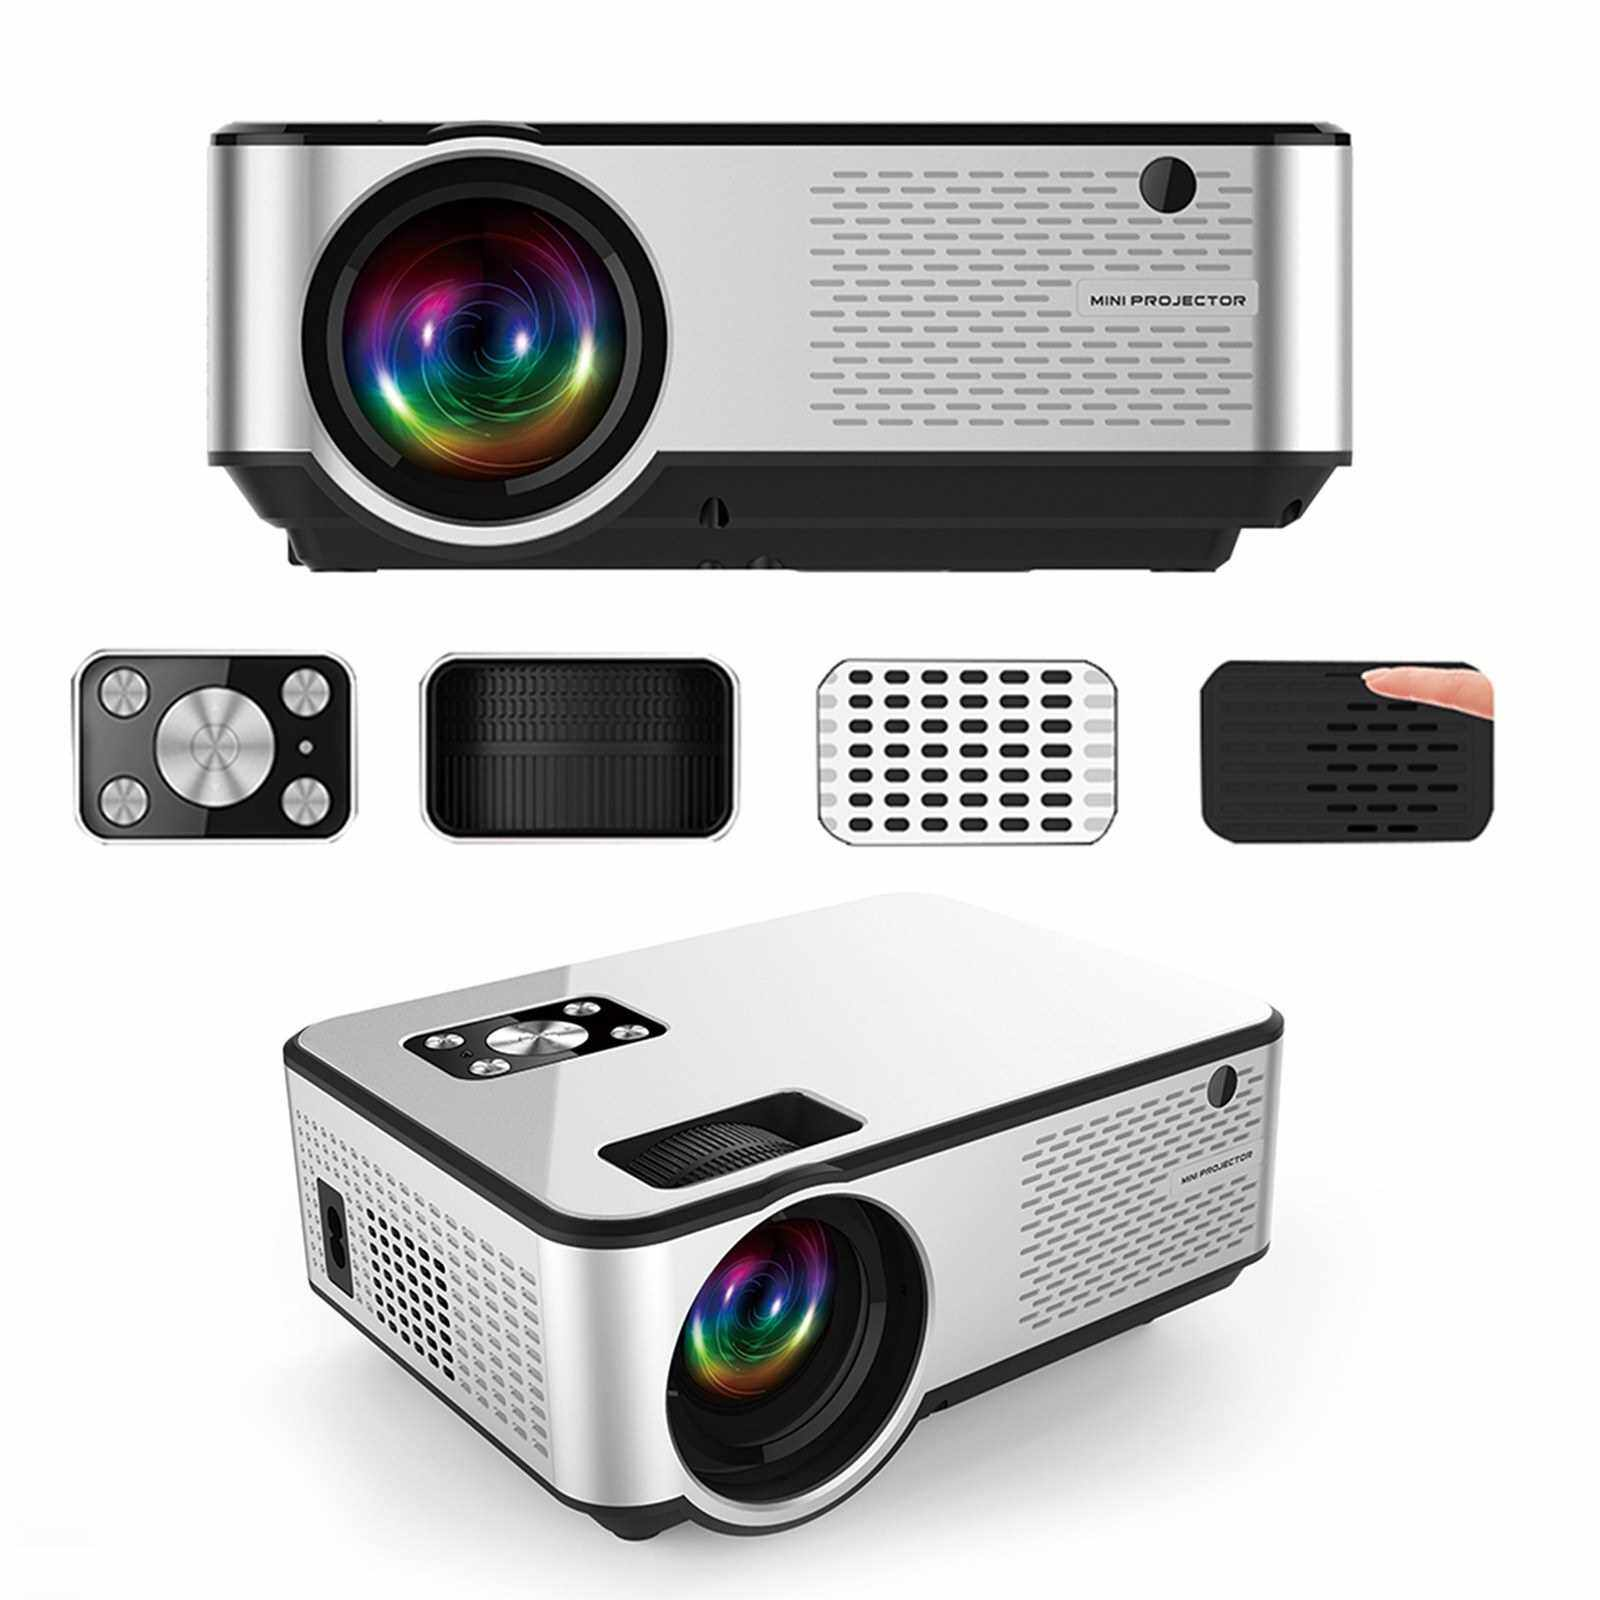 C9 LED Mini Projector 1280*720P Full HD Projector Video Beamer Home Theater Support HD USB AV VGA AUX Video Player (Us)